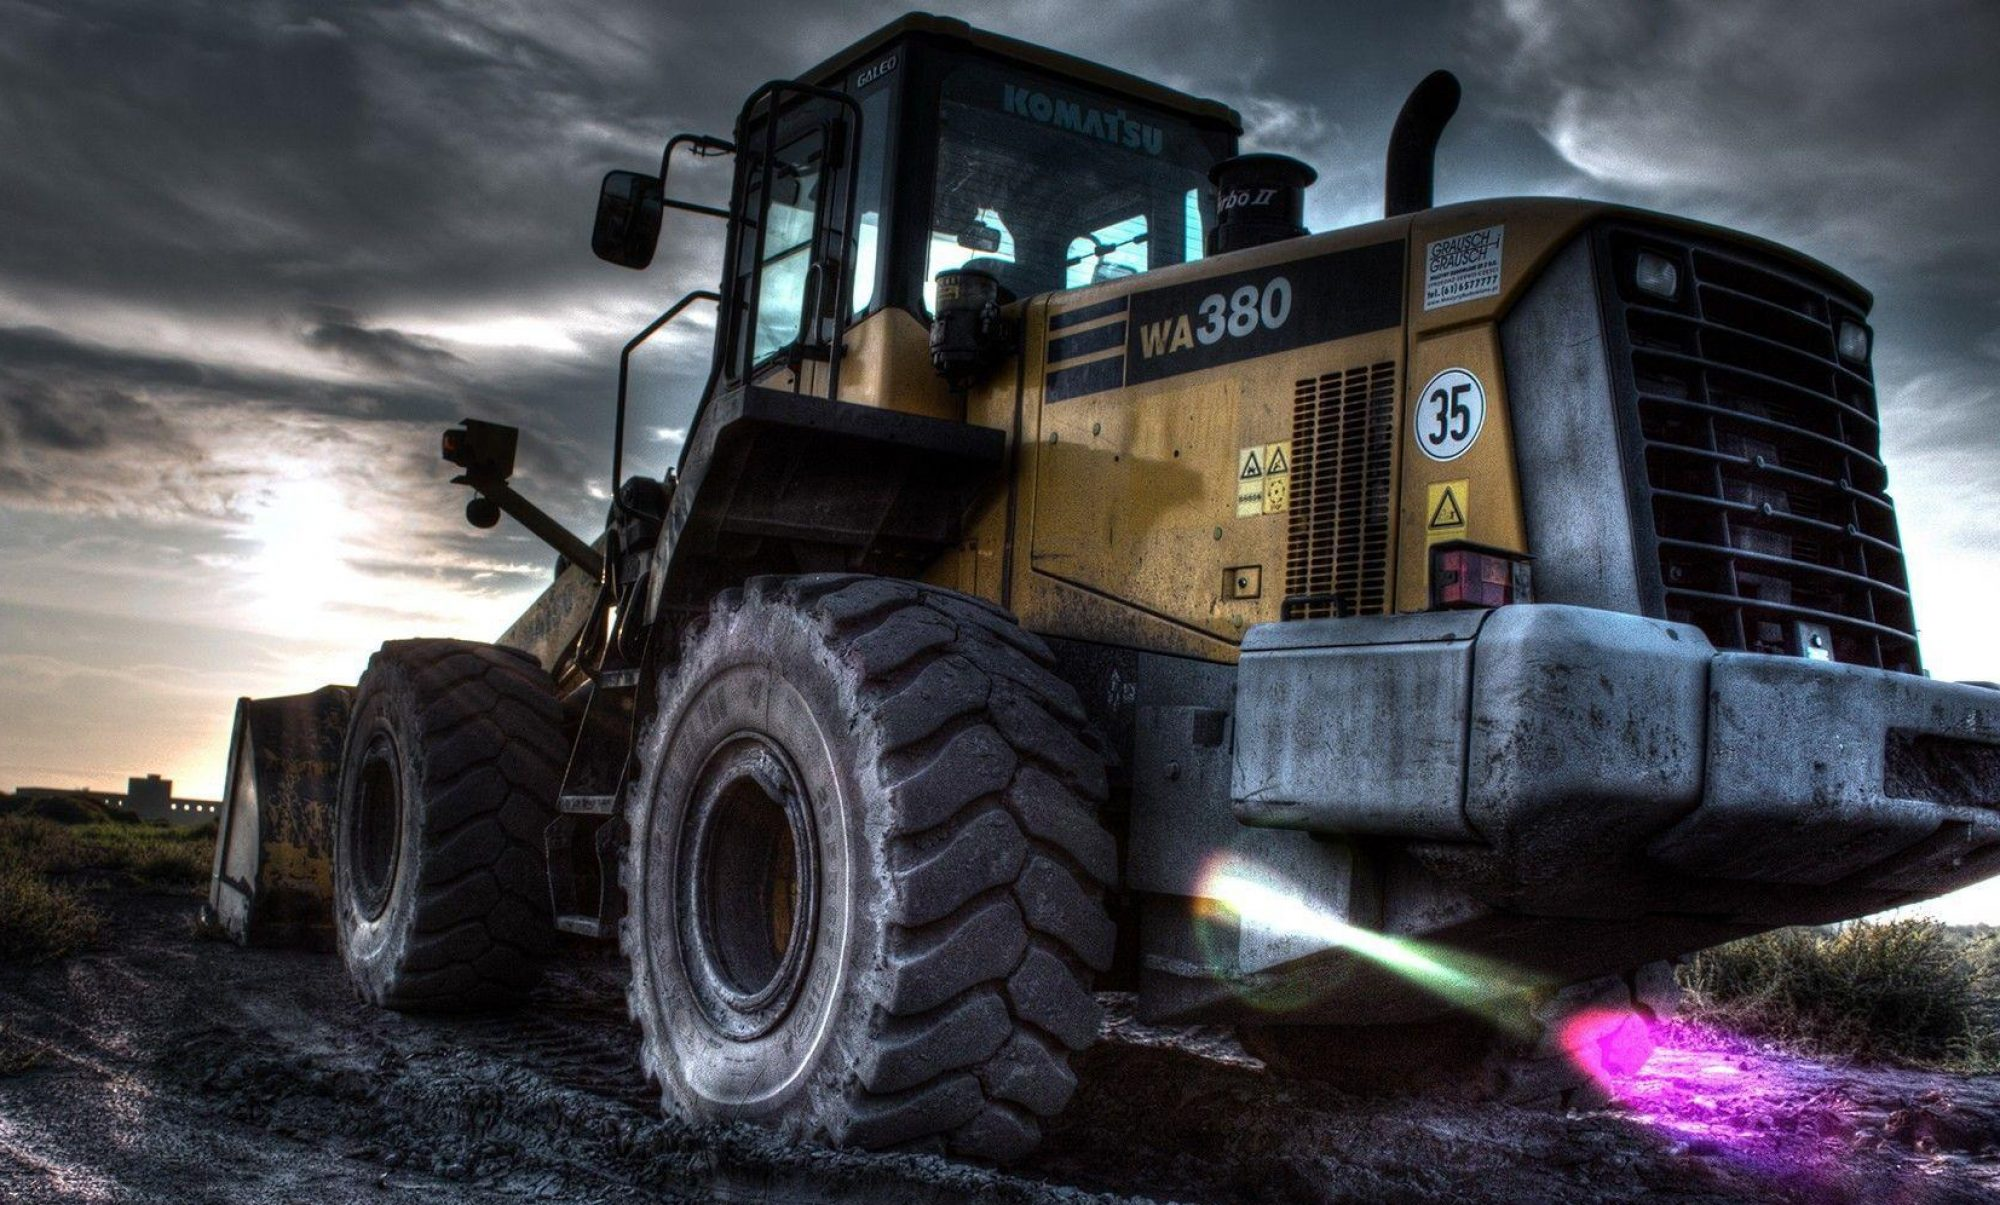 Komatsu Service Manual Online Download